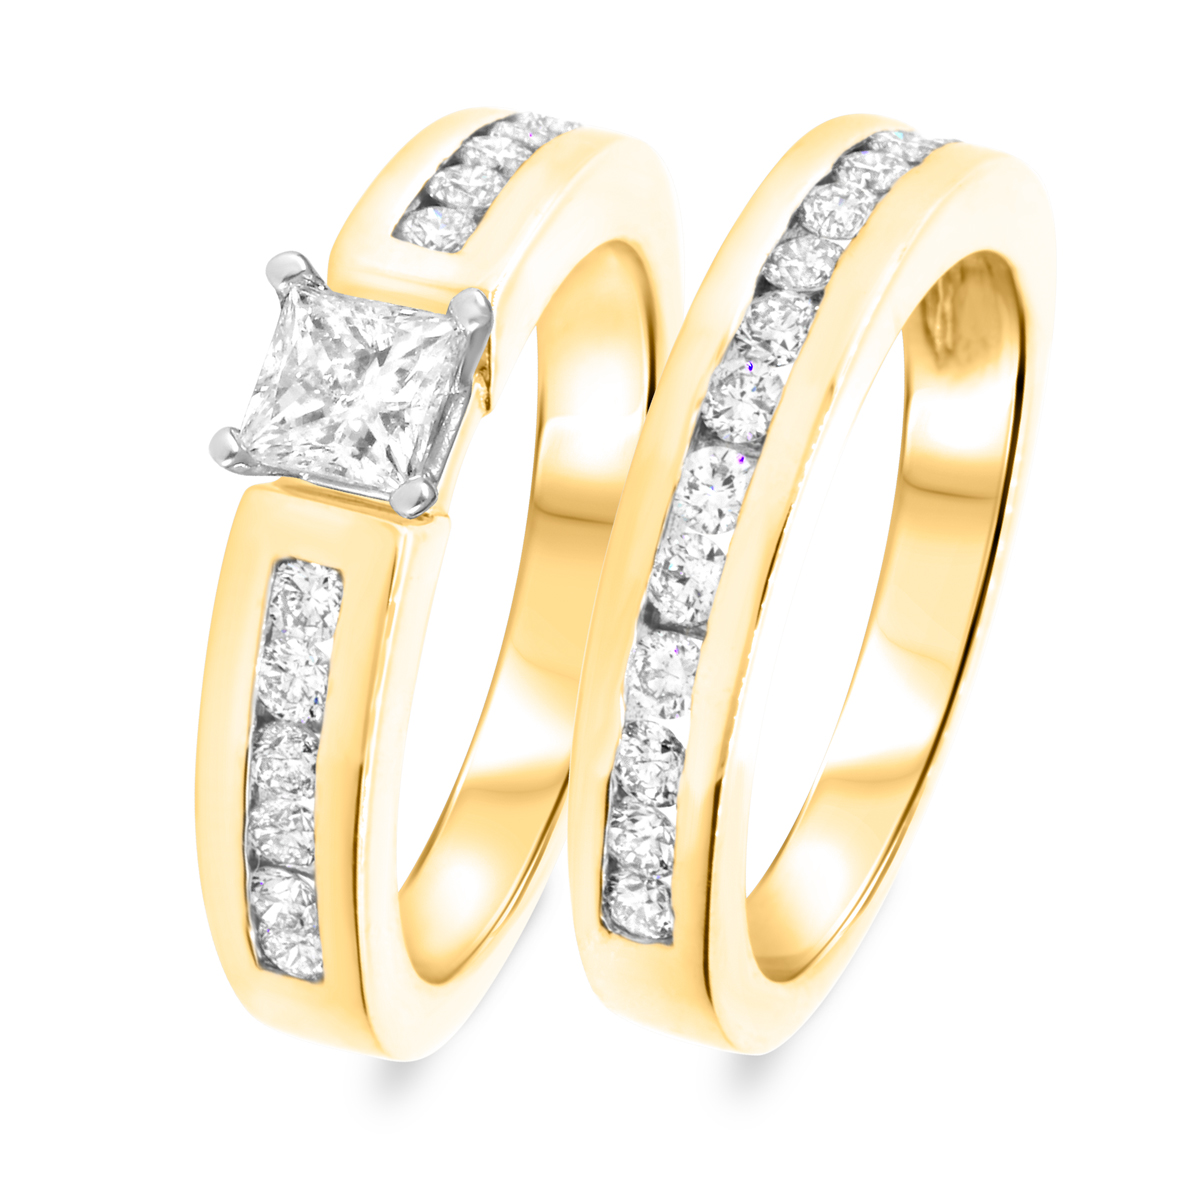 1 3/8 CT. T.W. Diamond Women's Bridal Wedding Ring Set 10K Yellow Gold